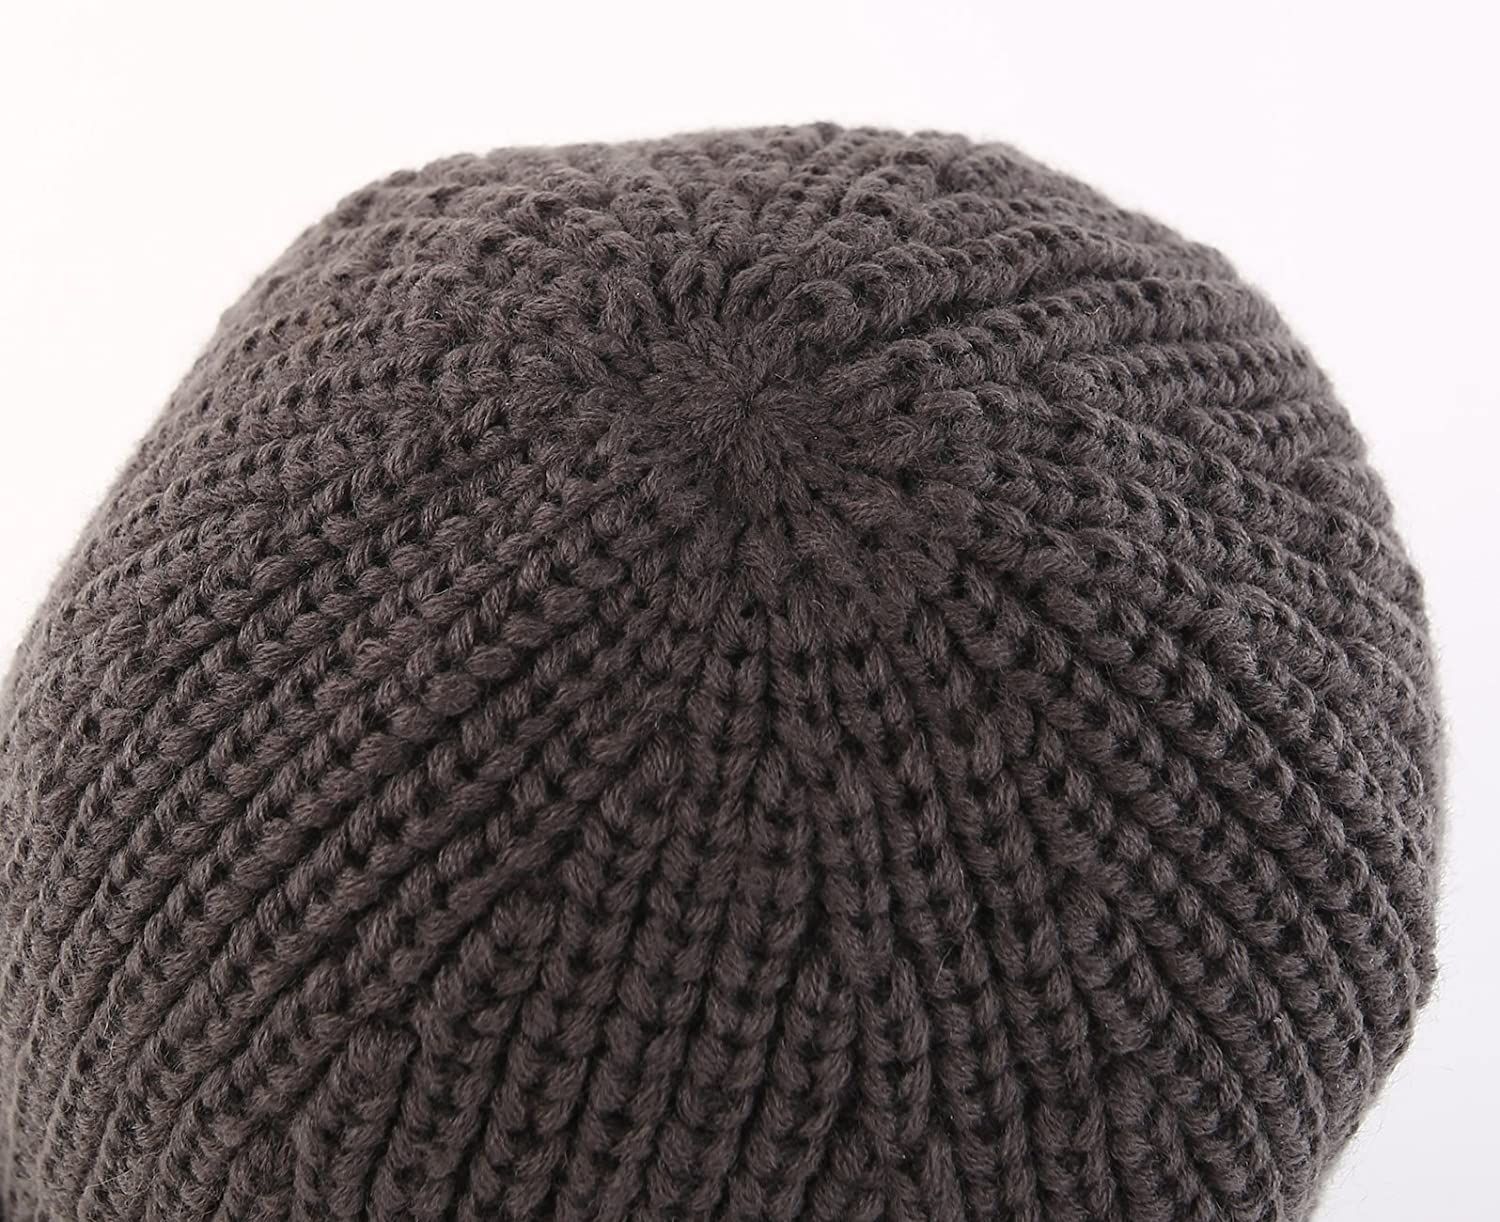 Home Prefer Mens Outdoor Newsboy Hat Winter Warm Thick Knit Beanie Cap with Visor